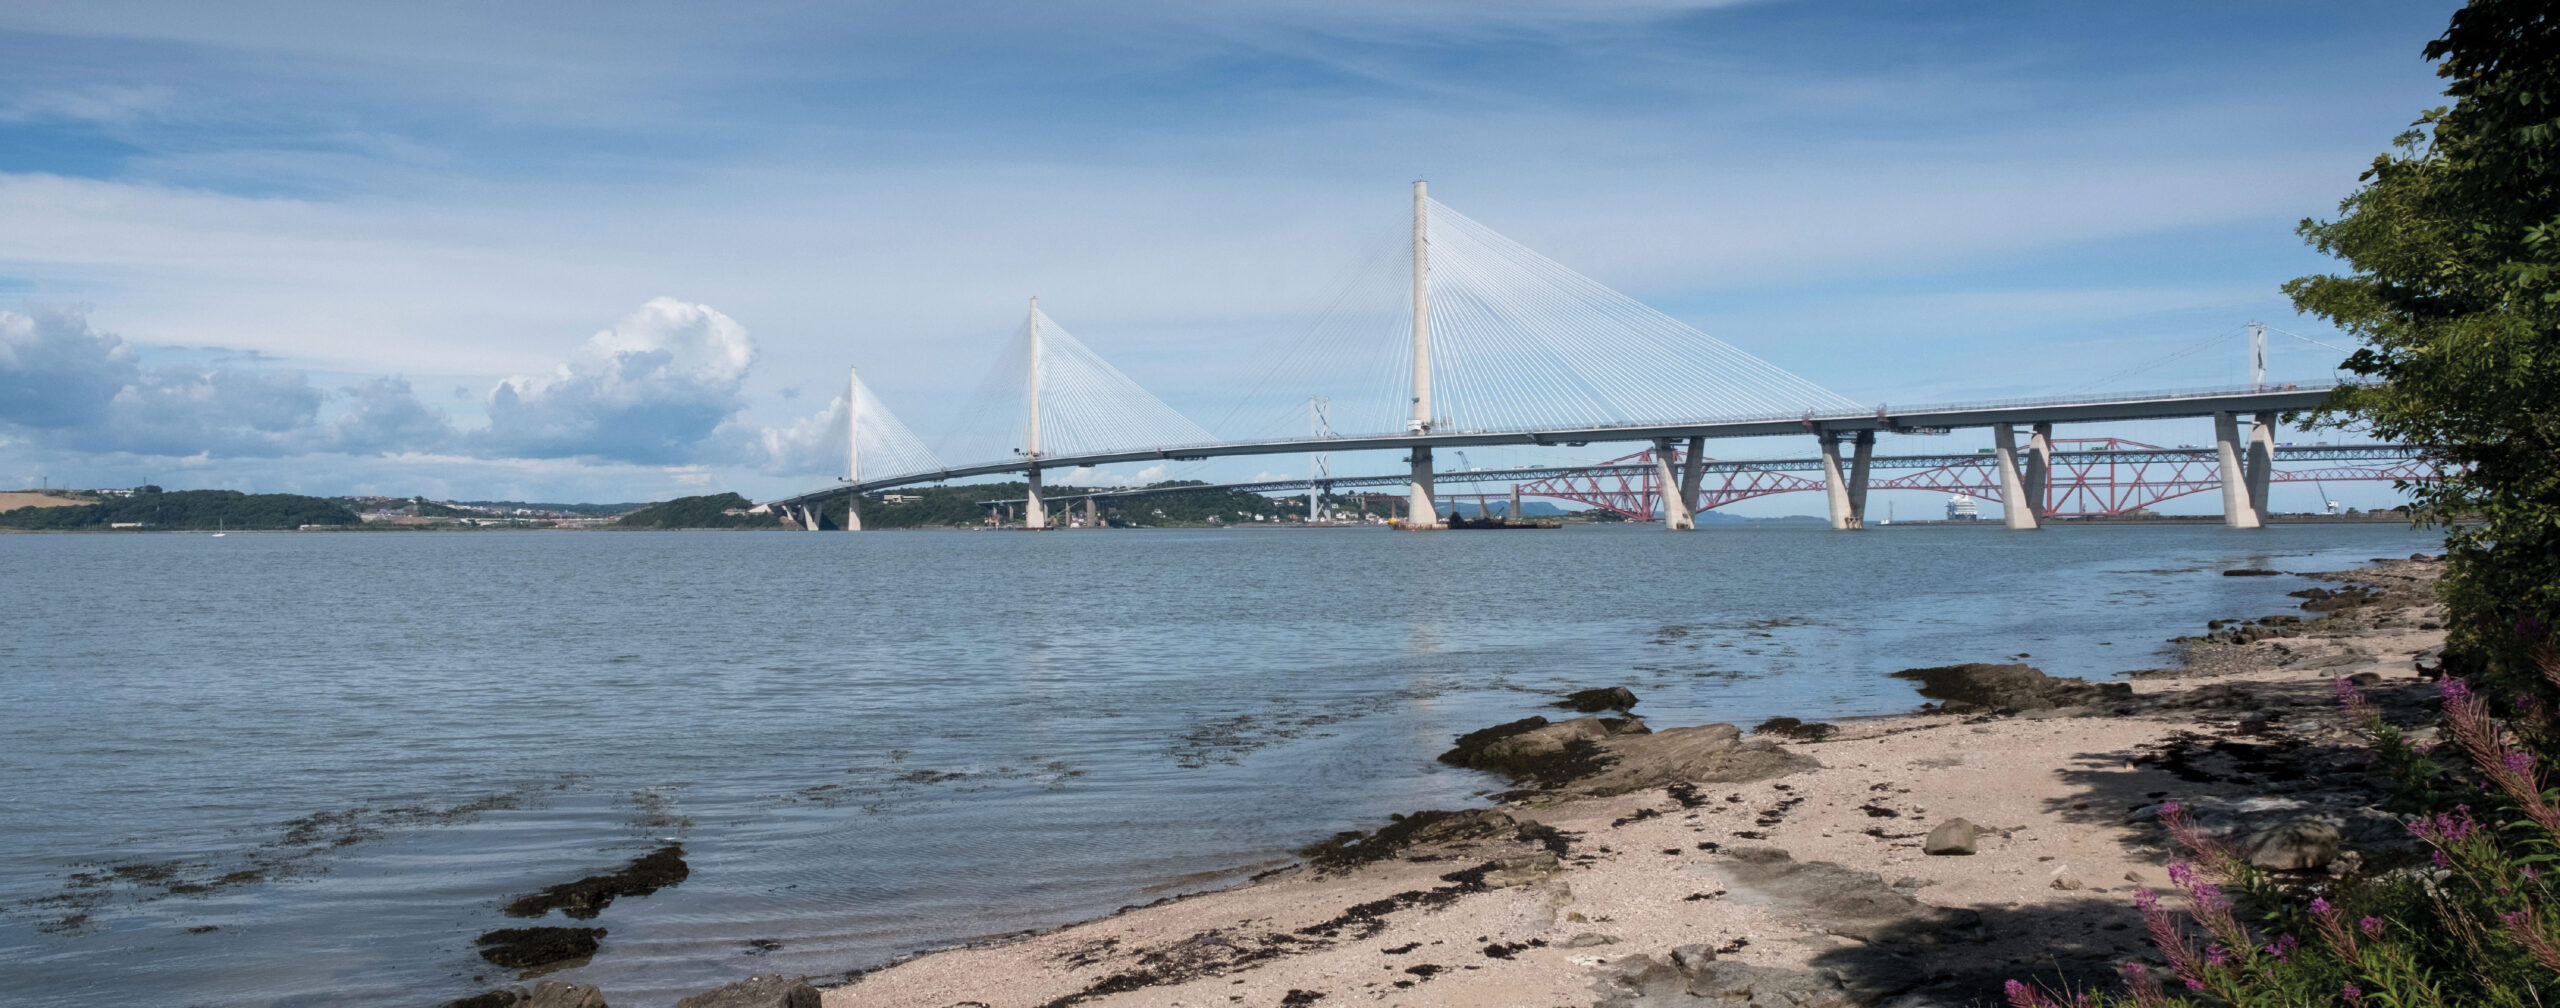 Queensferry Crossing and Forth Rail Bridge